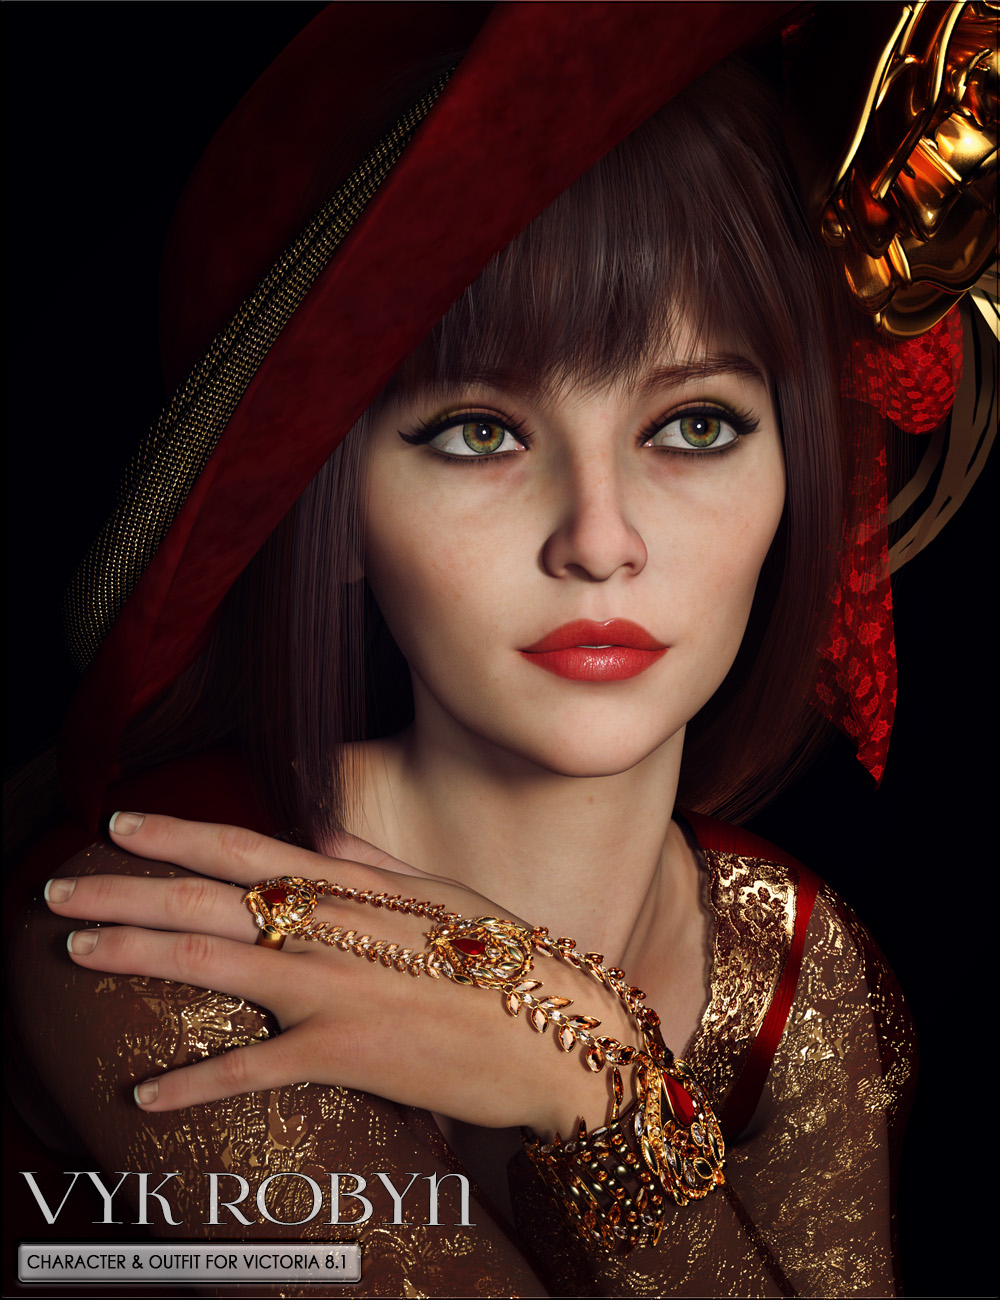 VYK Robyn Character and Outfit for Victoria 8.1 by: vyktohria, 3D Models by Daz 3D